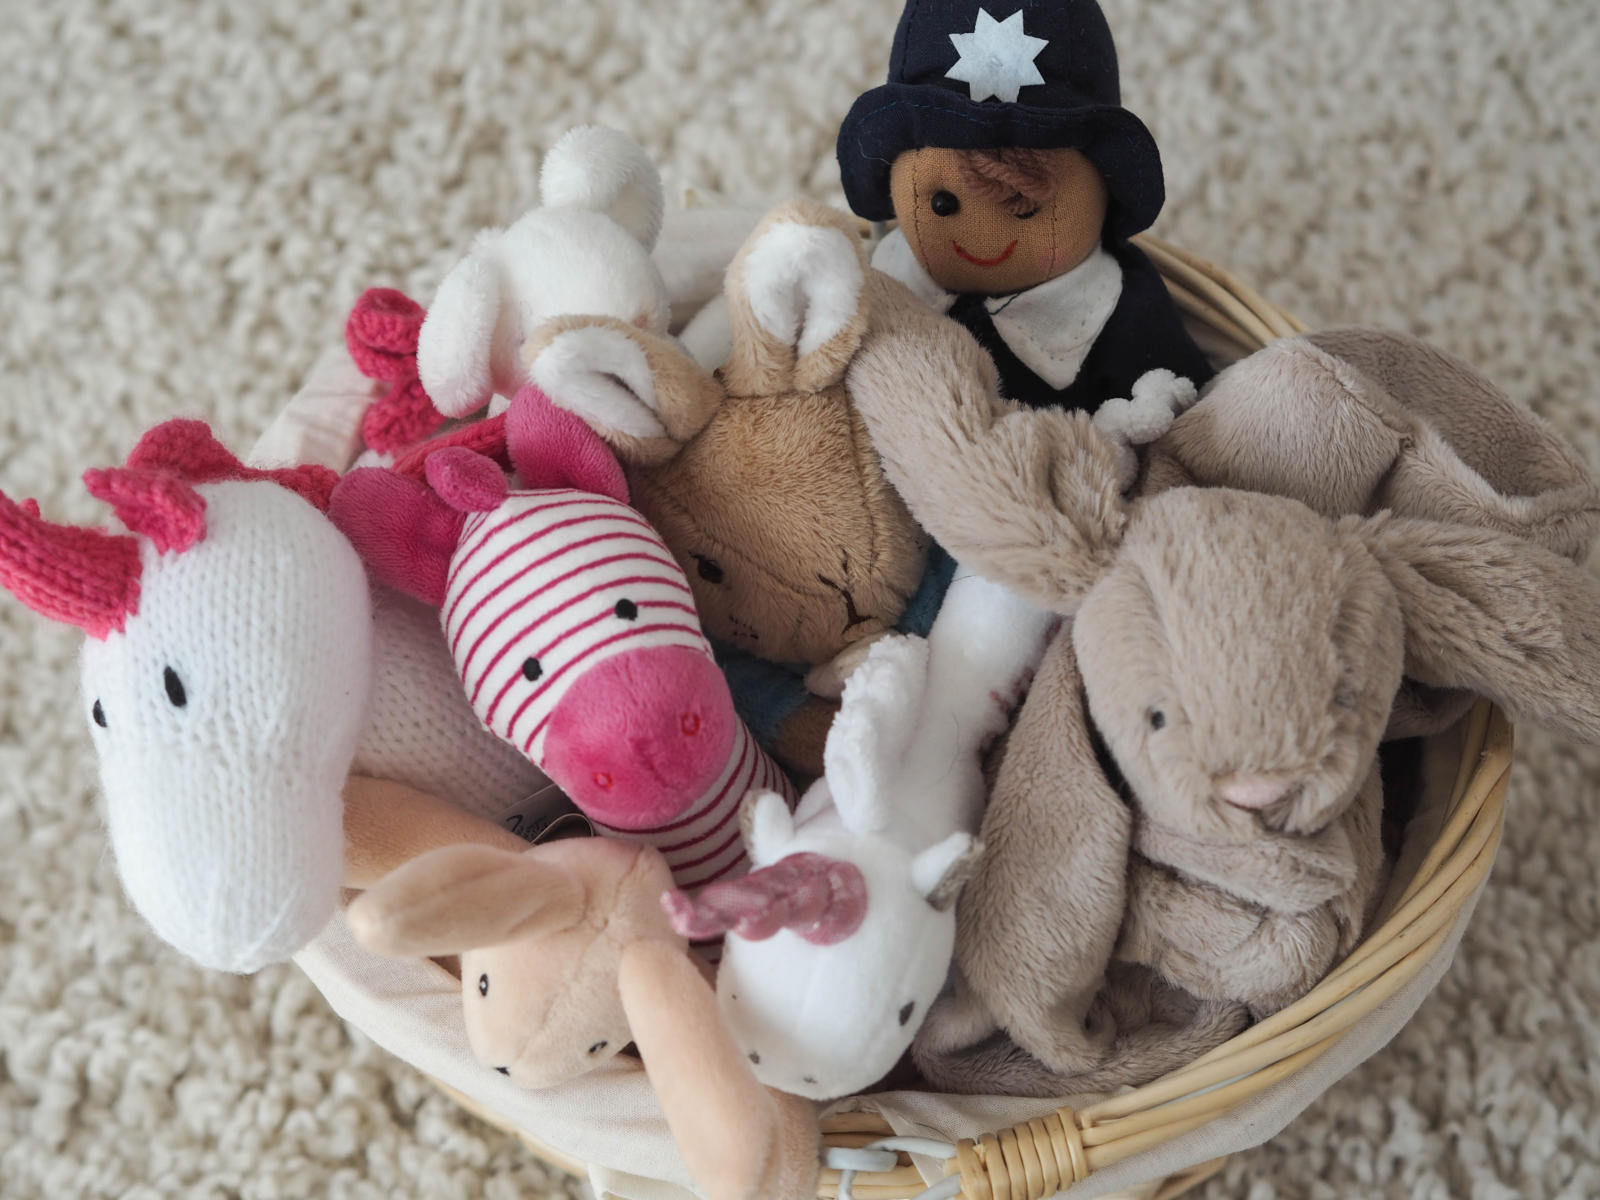 Basket of toys for a baby